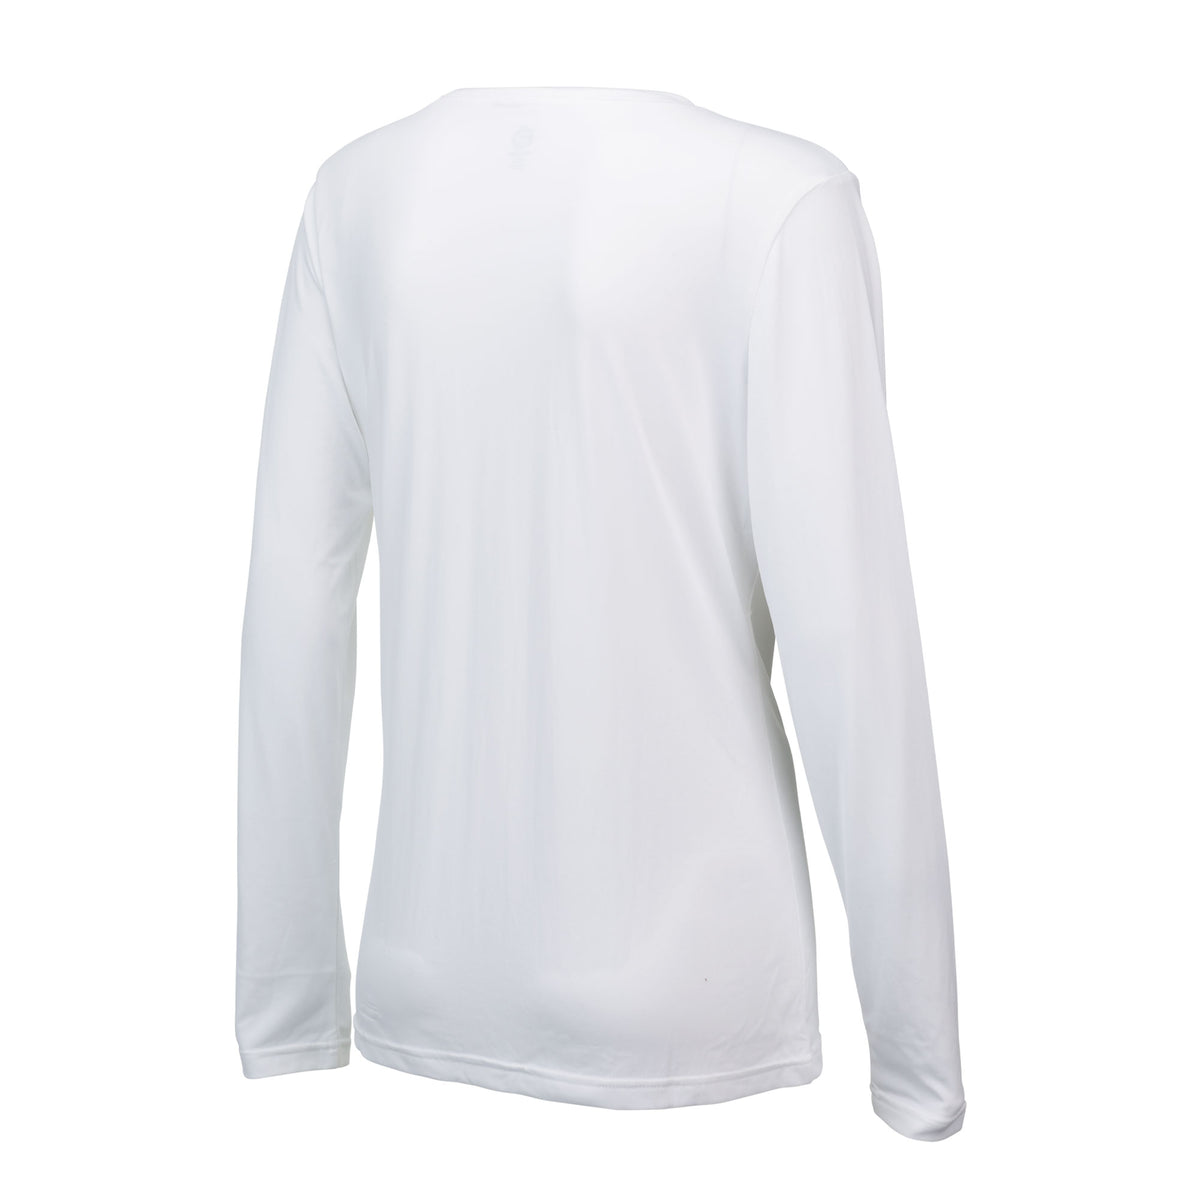 Solar Performance Long Sleeve UPF Shirt Big Image - 2